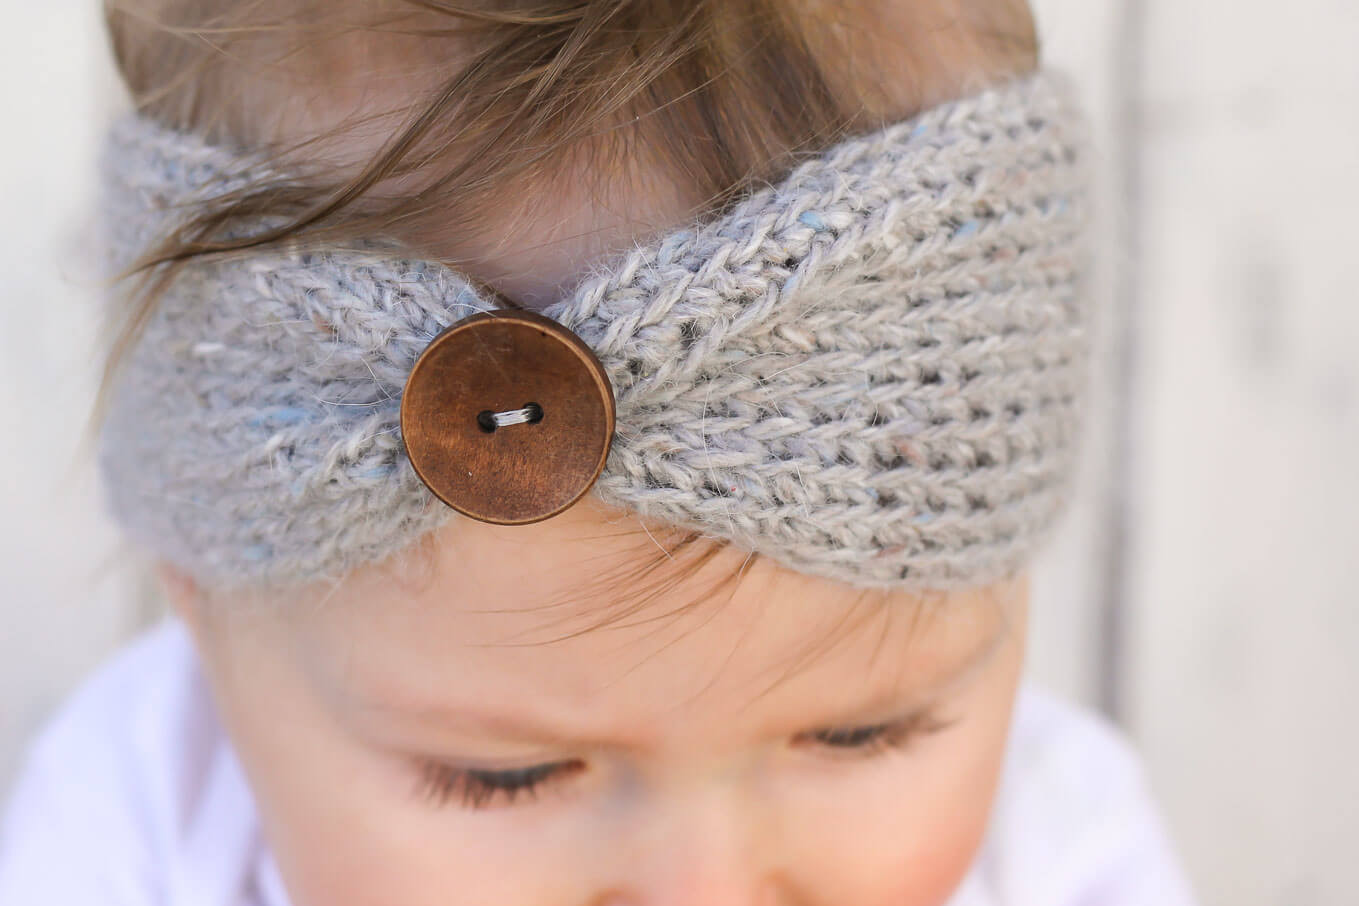 Newborn Crochet Patterns Best Of Free Crochet Headband Pattern Baby Adult Sizes Of Incredible 41 Ideas Newborn Crochet Patterns